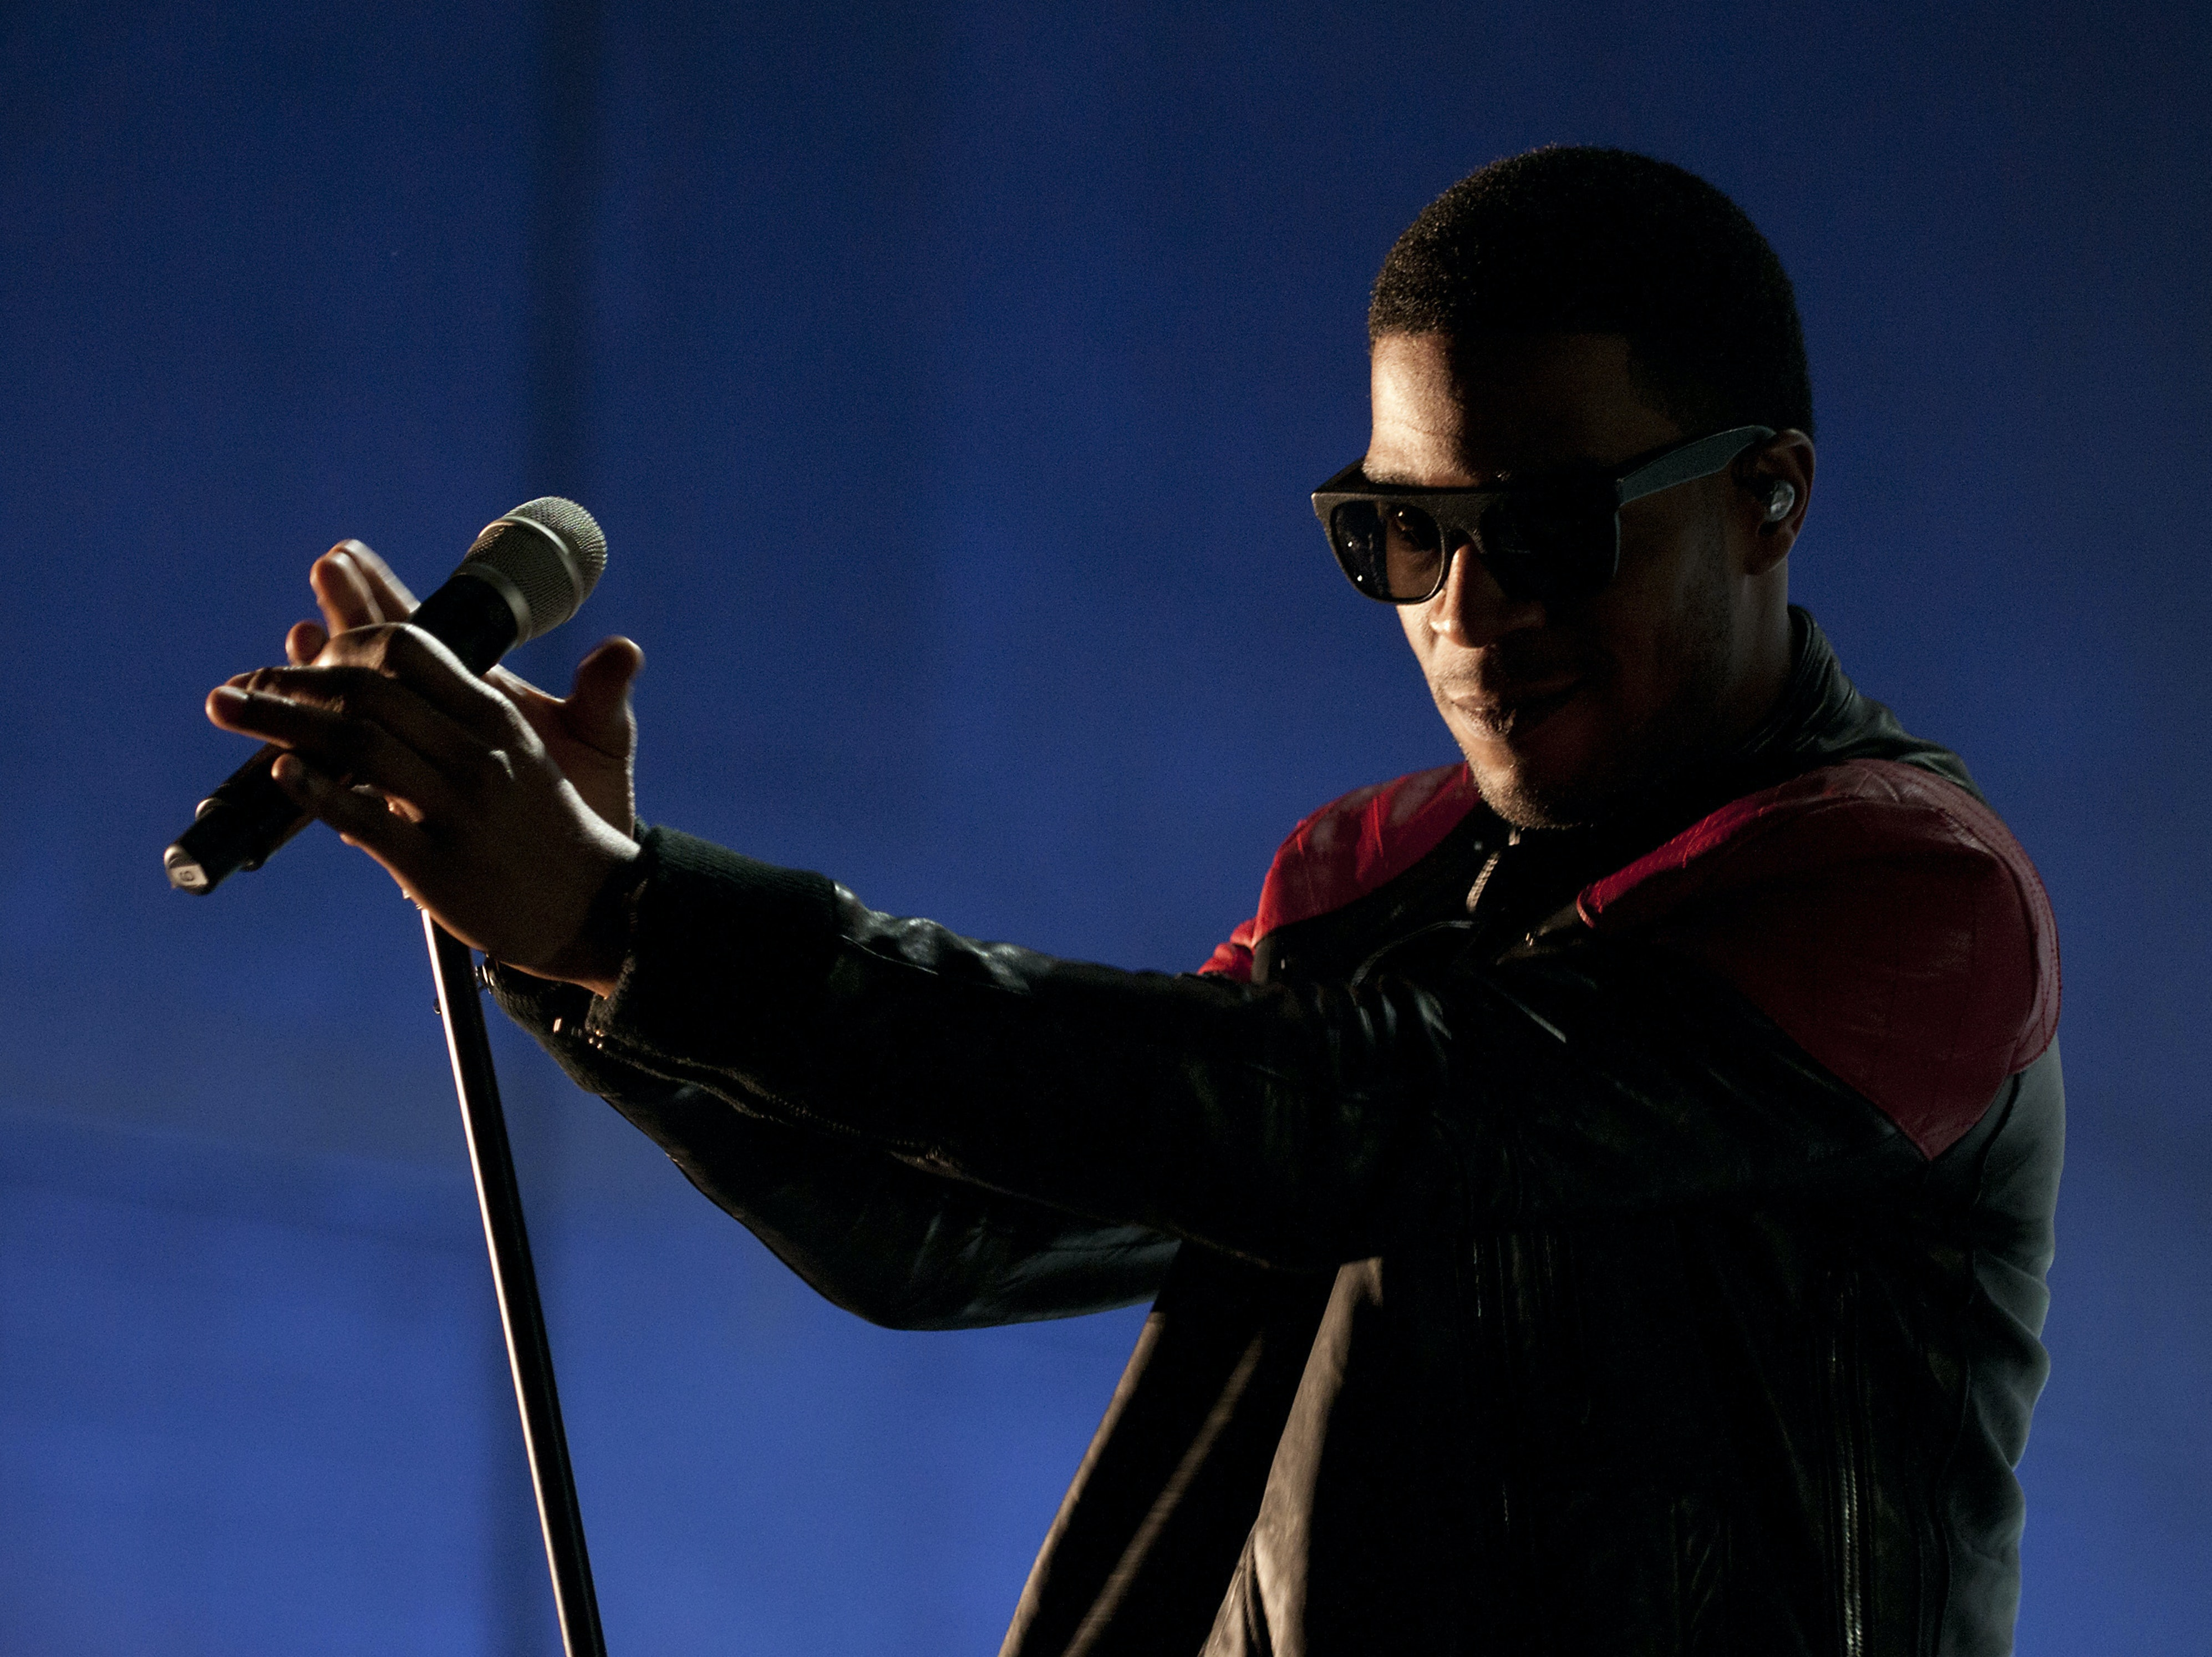 AUSTIN, TX - MARCH 19: Kid Cudi performs during VEVO Presents: G.O.O.D. Music at VEVO Power Station on March 19, 2011 in Austin, Texas. (Photo by Daniel Boczarski/Getty Images for VEVO)